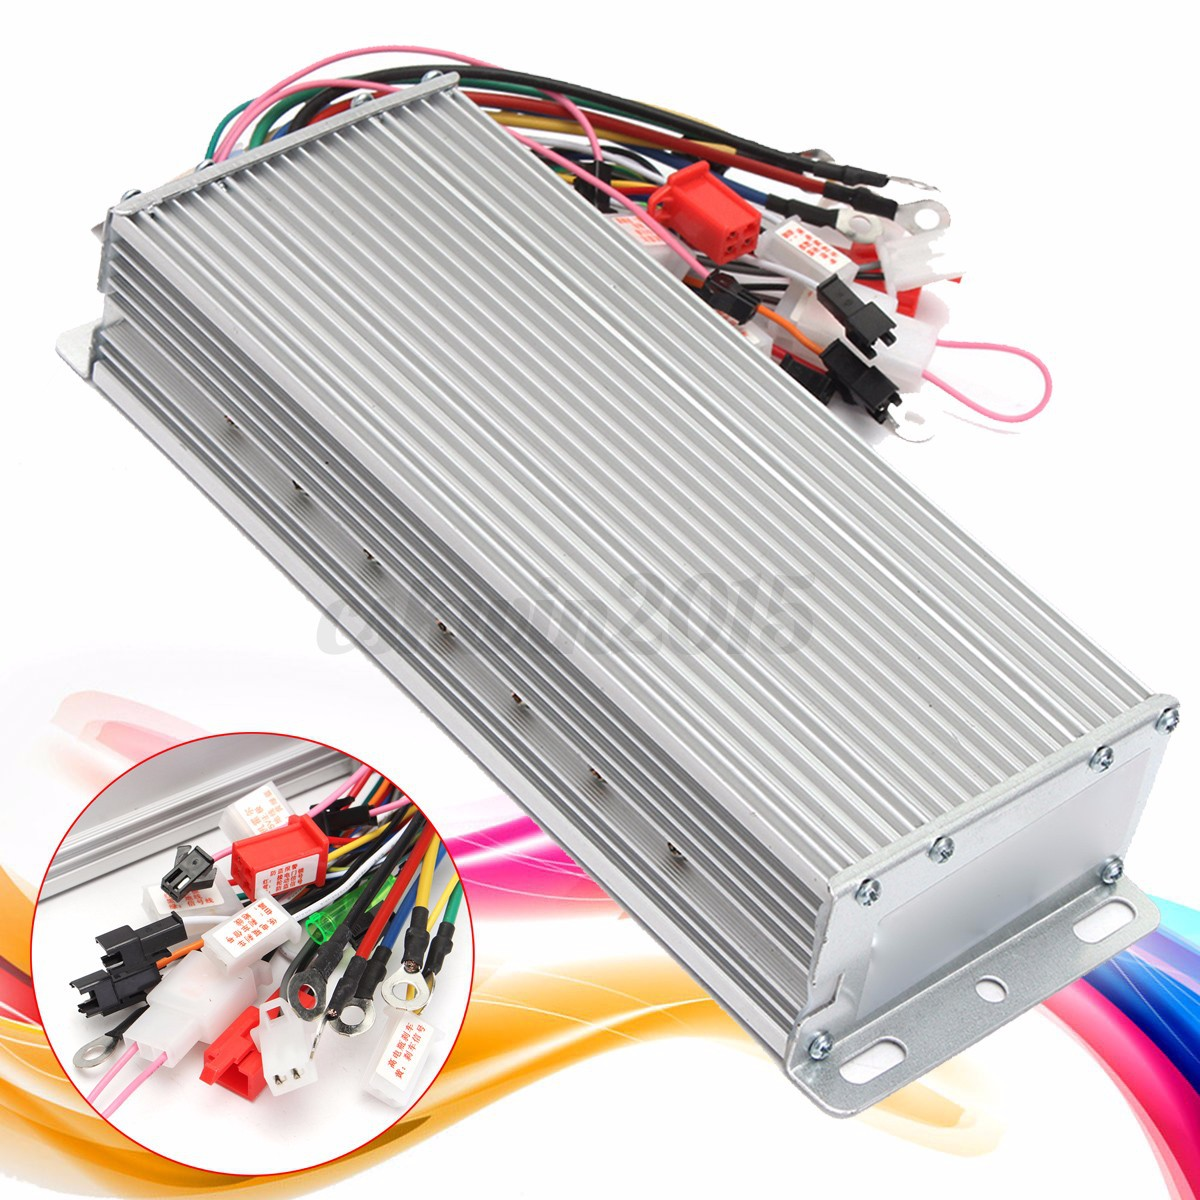 Dc 48v 1500w Electric Bicycle Brushless Motor Controller